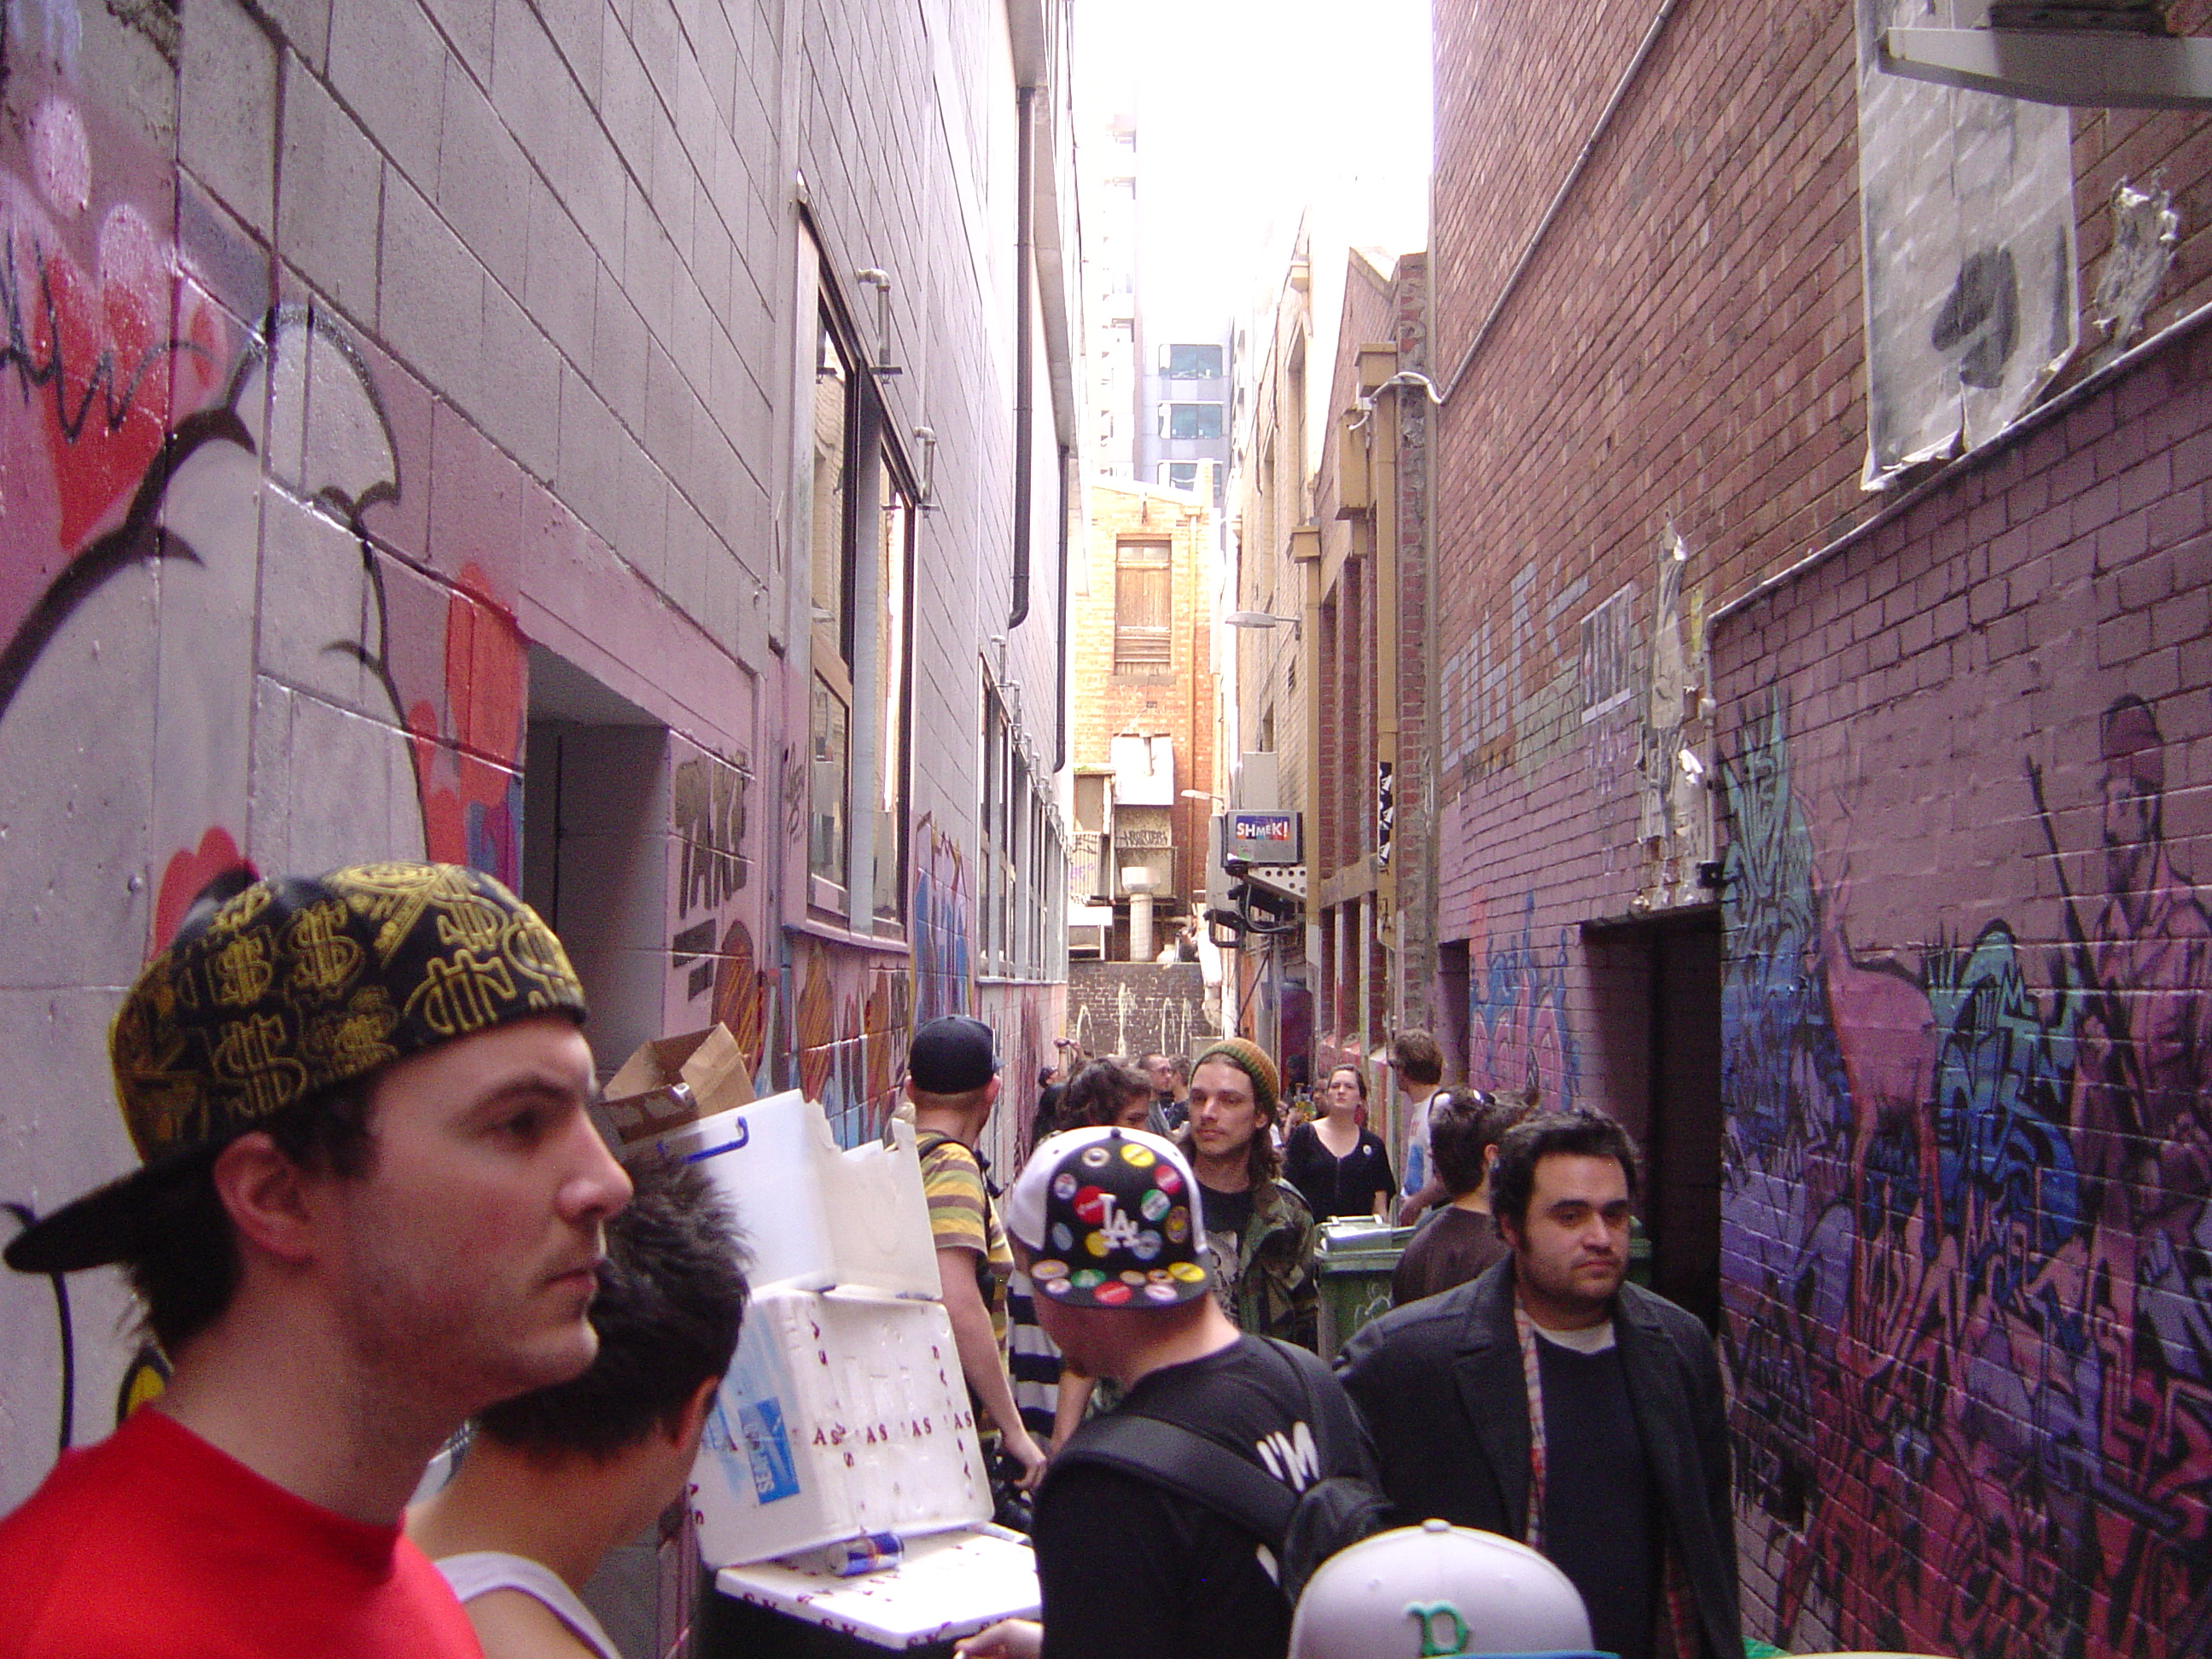 crowds in Croft Alley